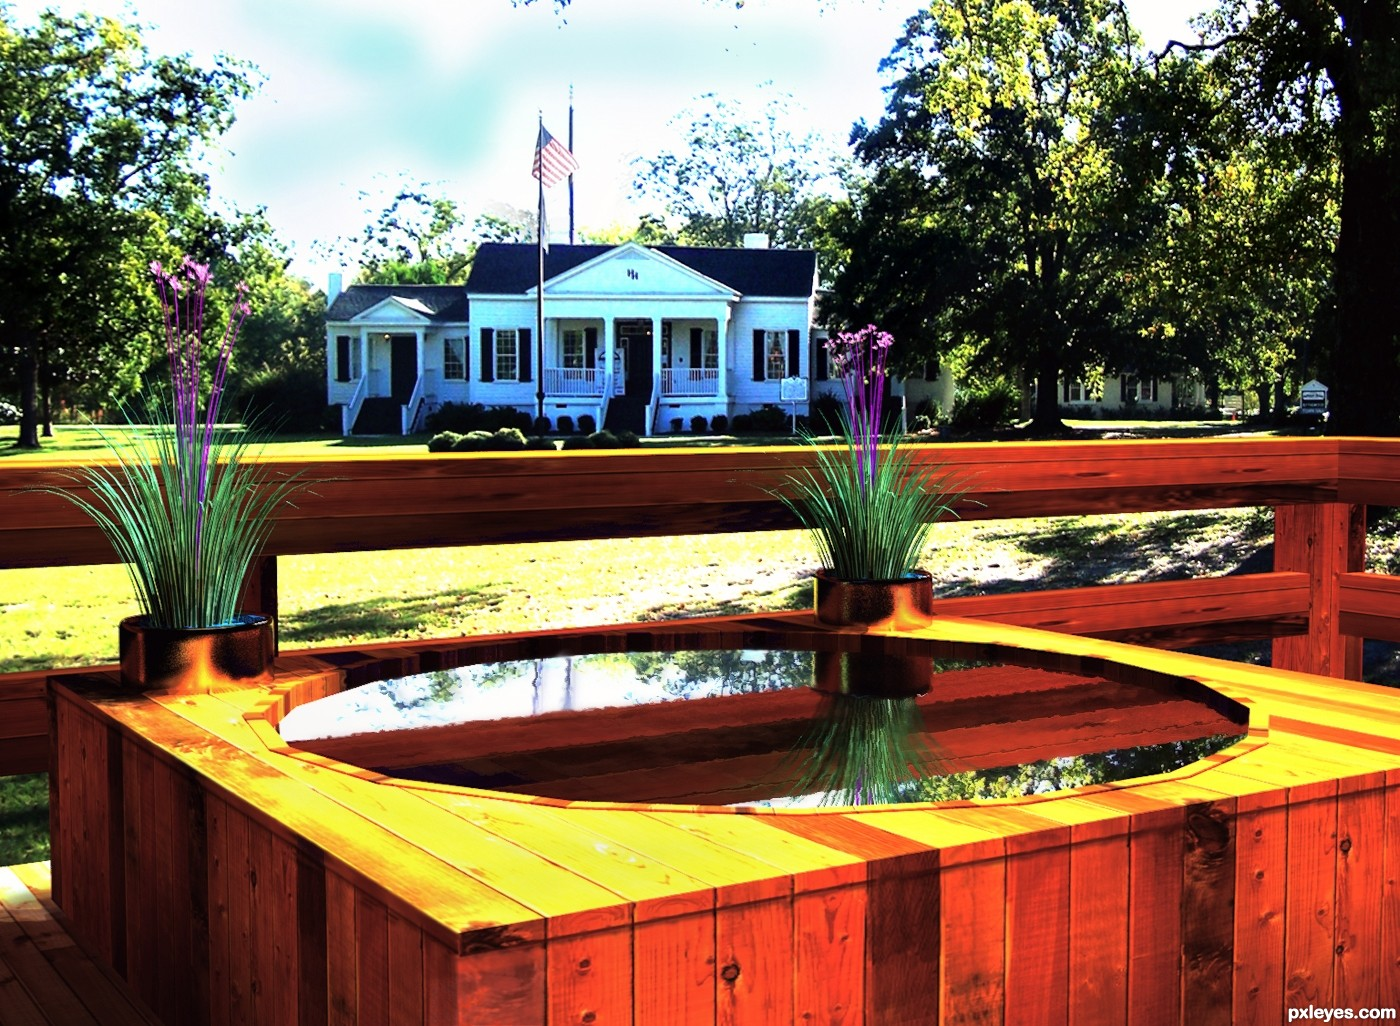 Cedar hot tub southern style picture by lchappell for for Hot tub styles